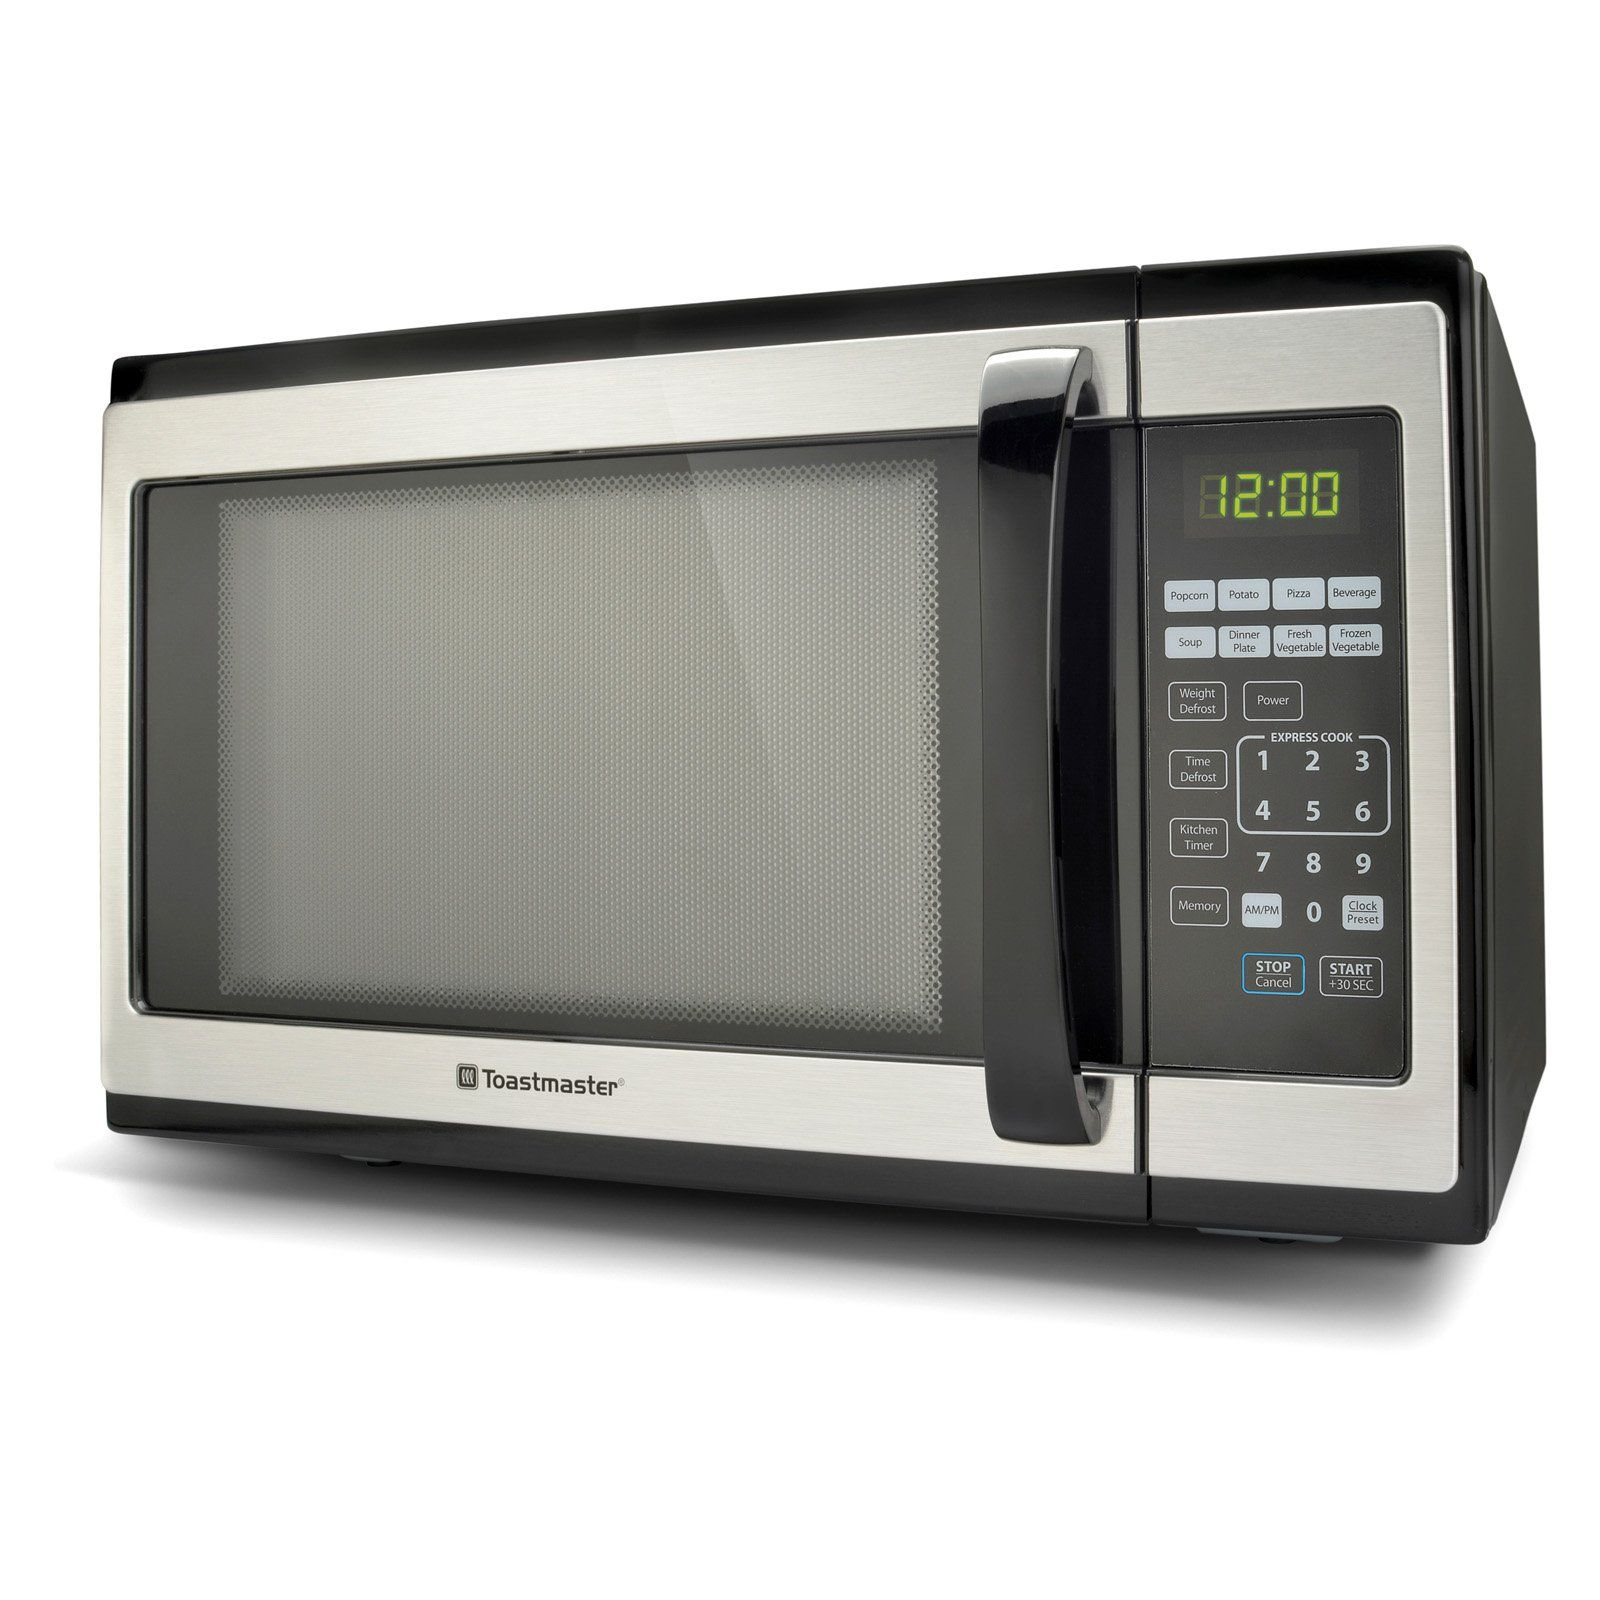 Toastmaster Tm 141em 1 4 Cu Ft Microwave Oven Stainless Steel